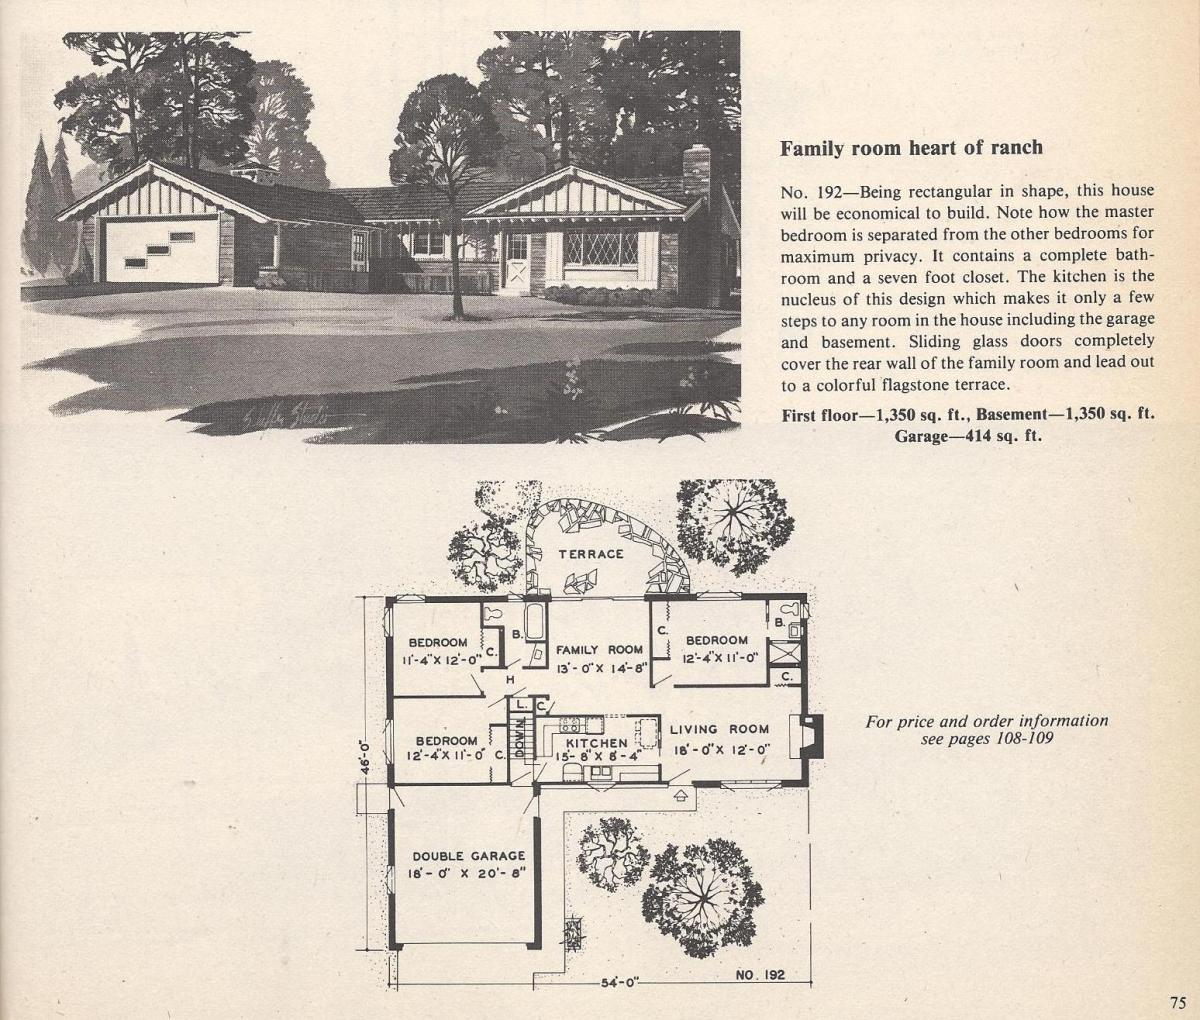 Vintage House Plans , Family Room